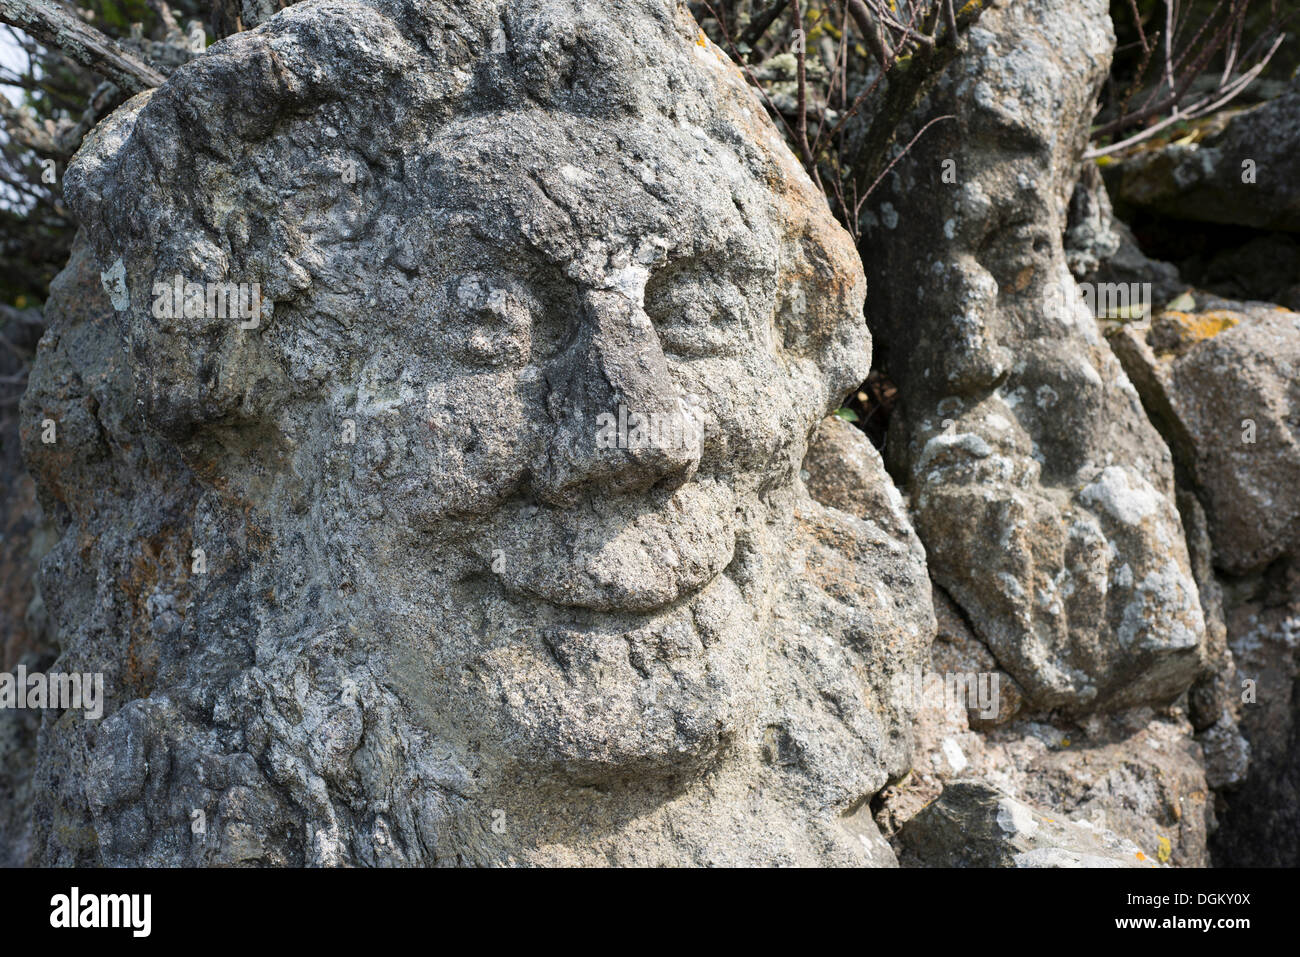 Stone head in the garden of sculpted rocks by Abbé Fouré, Rothéneuf, Brittany, France, Europe - Stock Image